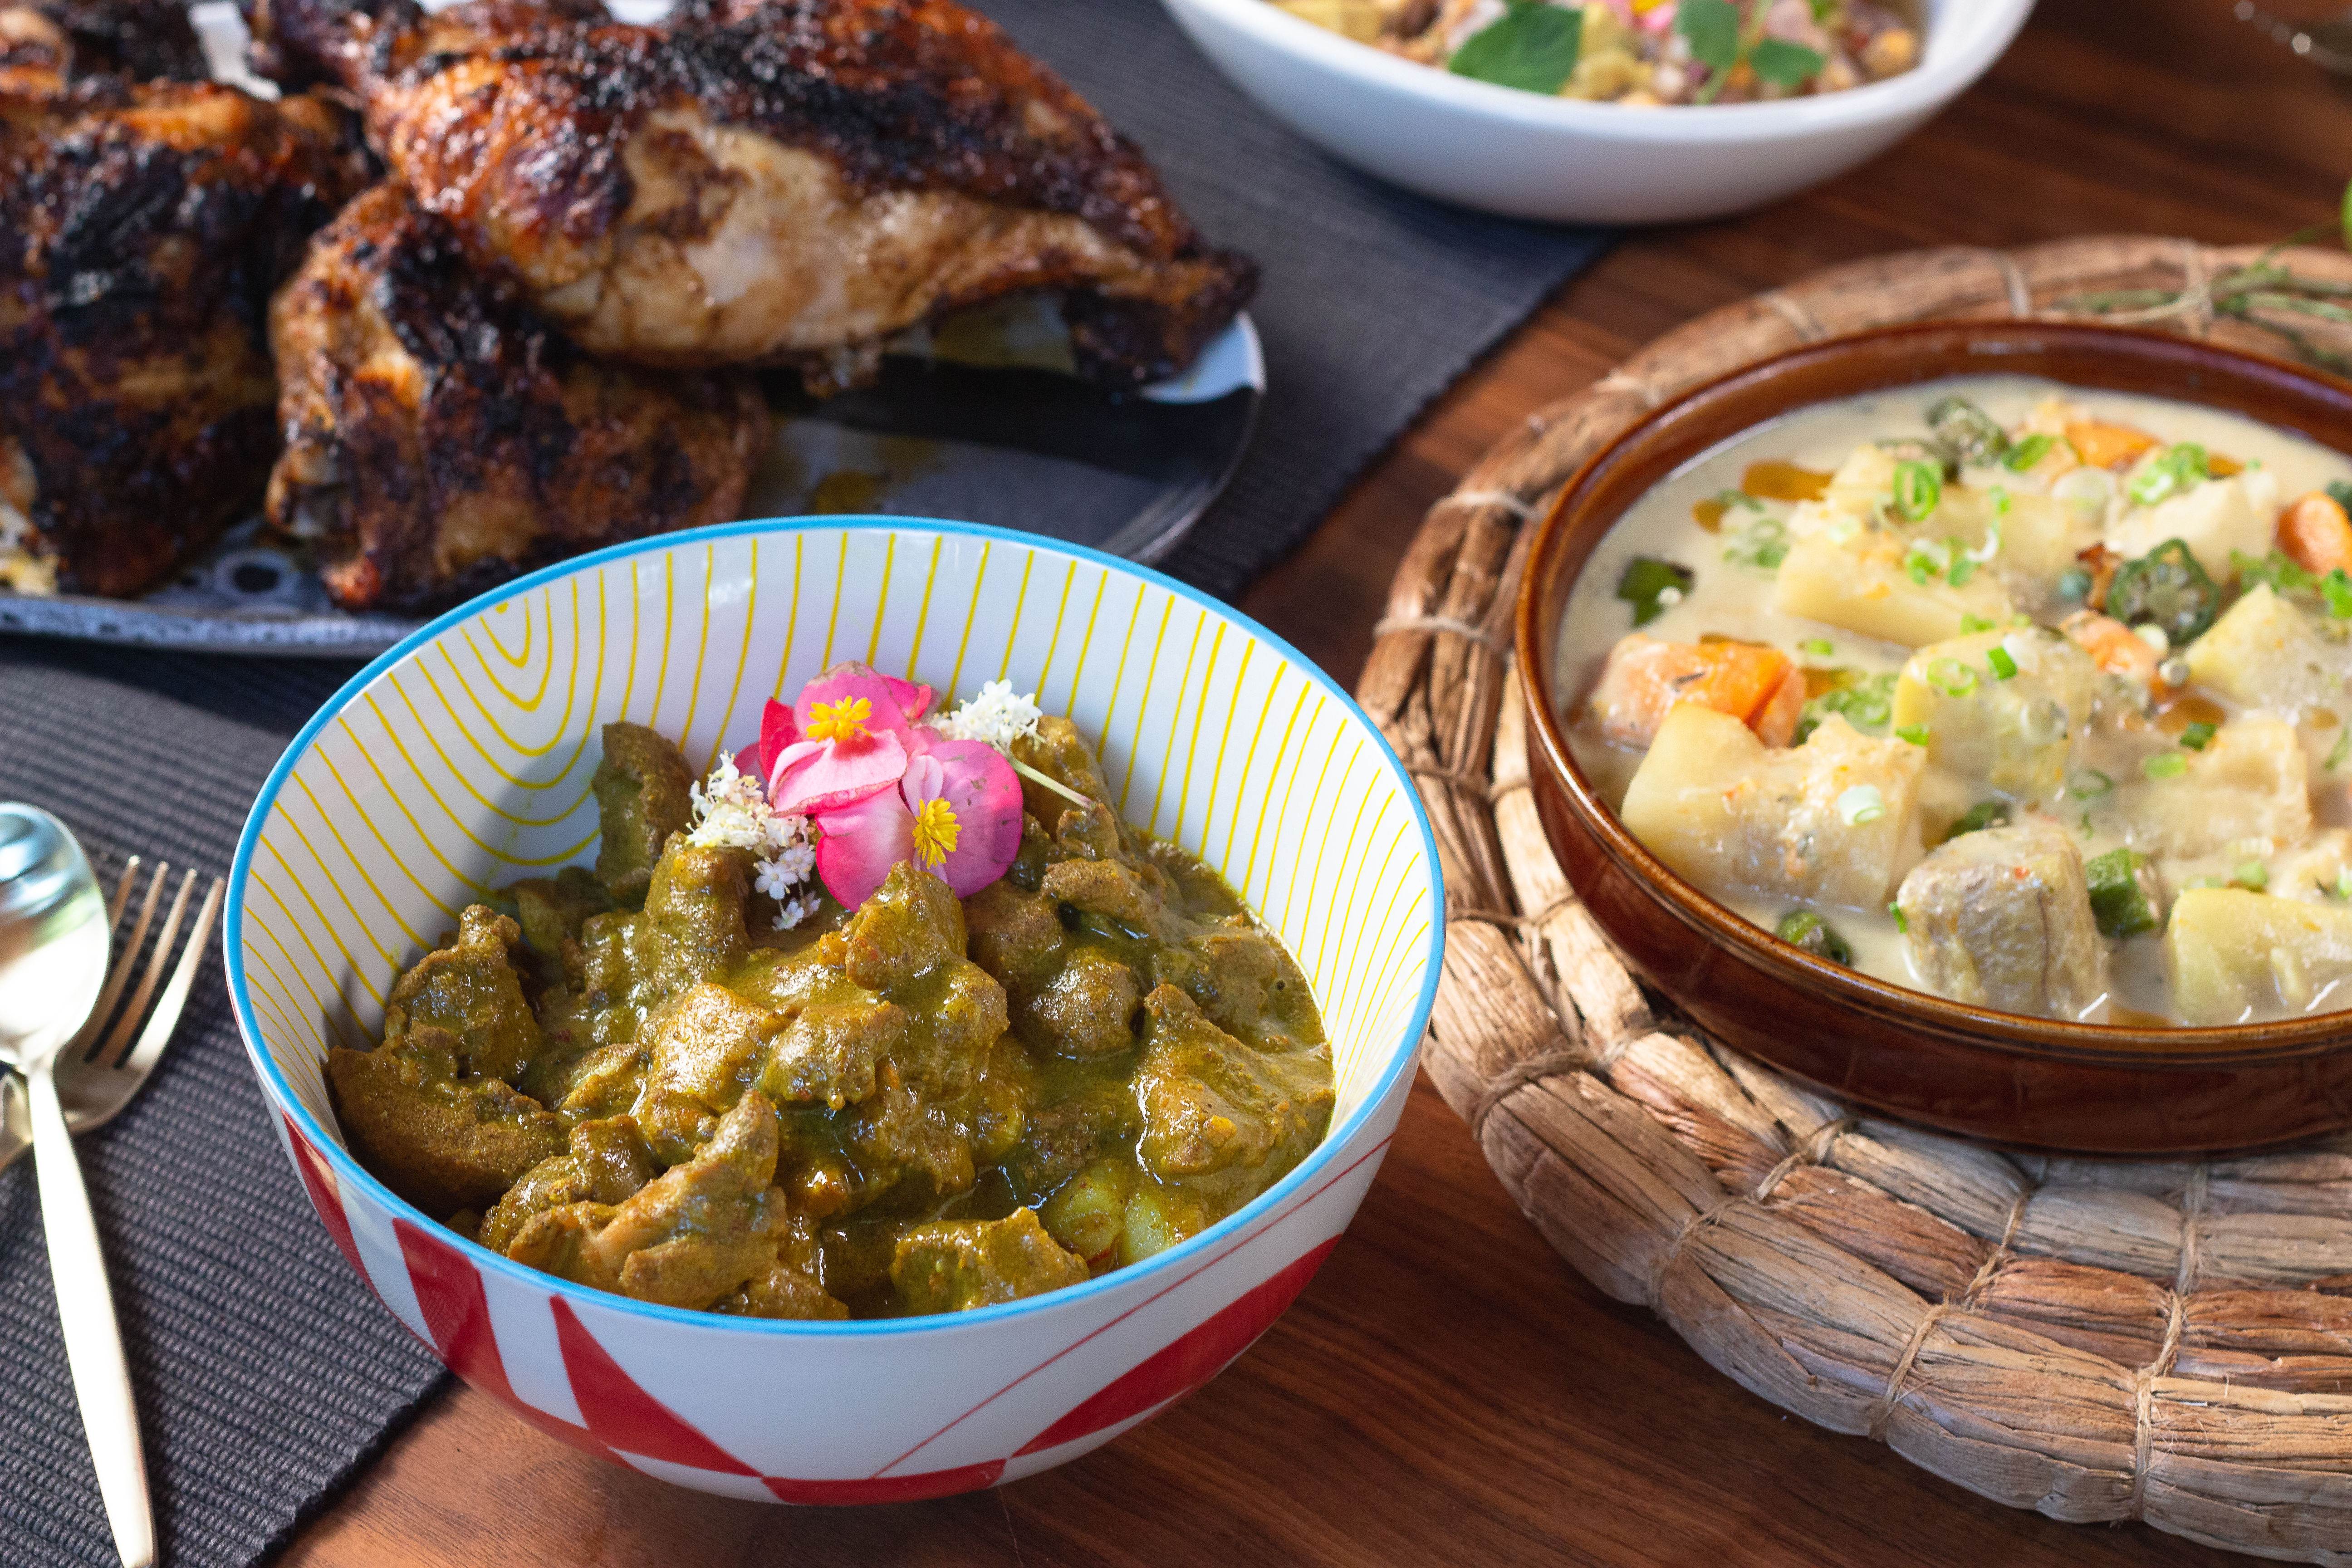 Dishes from Canje